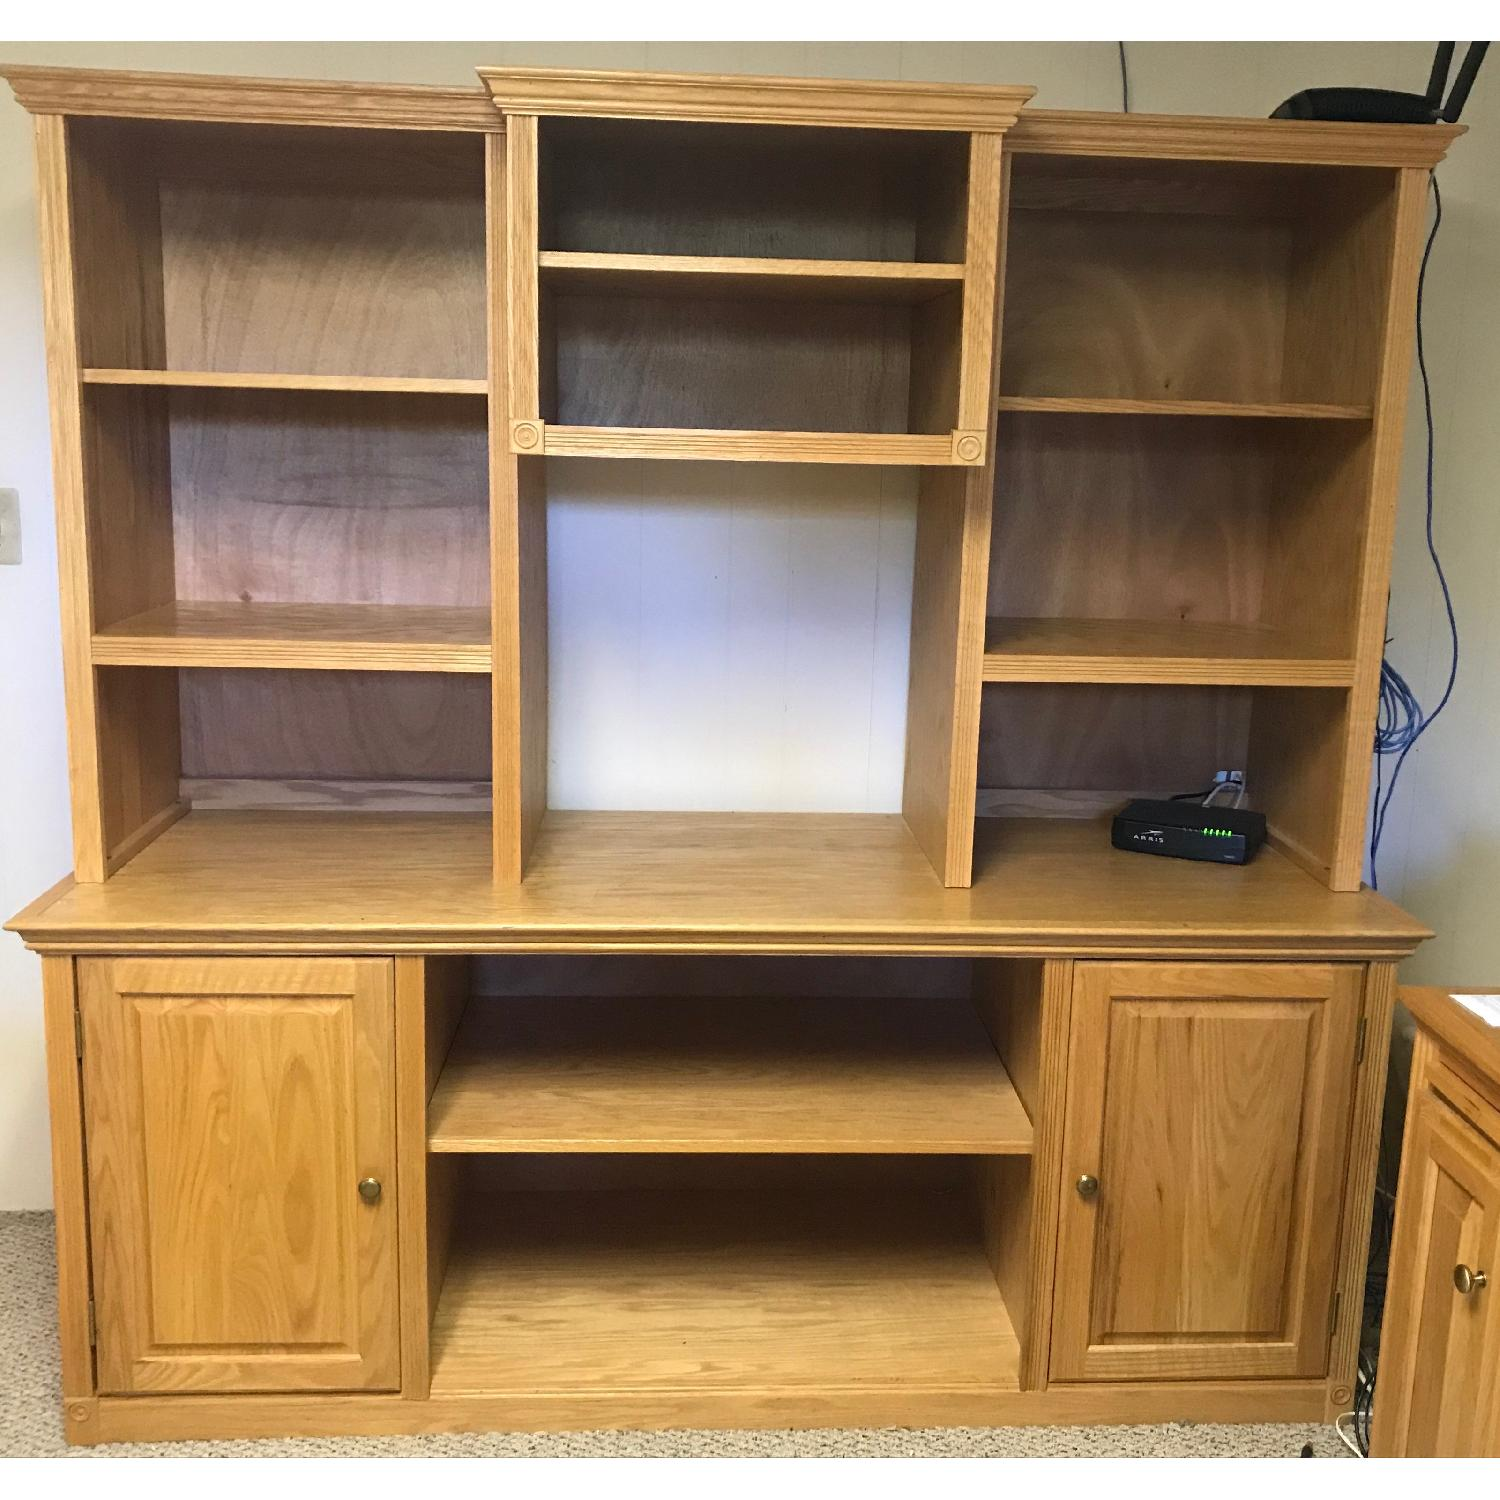 3-Piece Wood Bookcase in Oak Finish - image-1